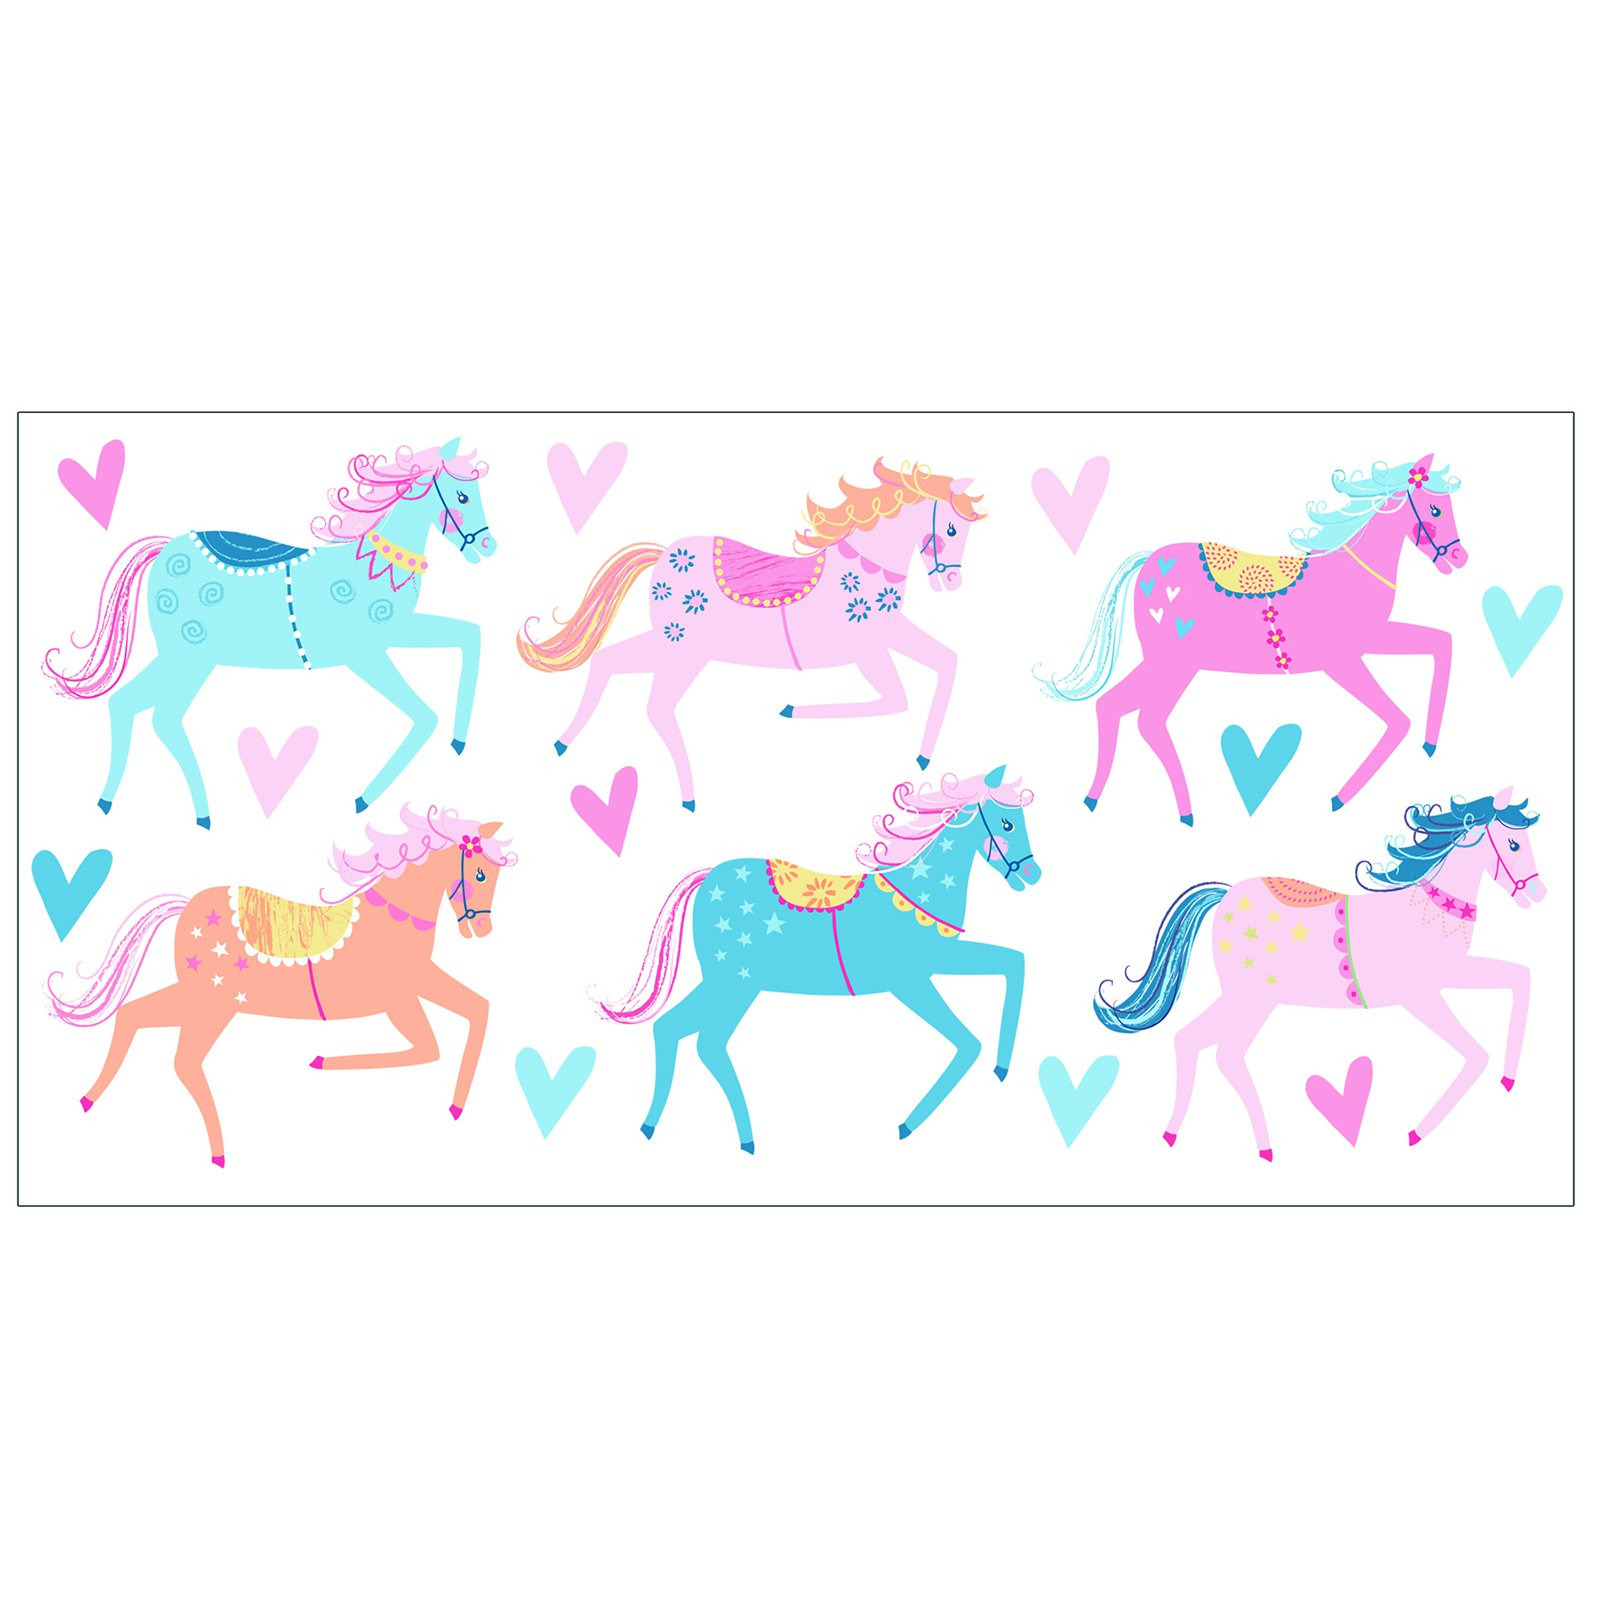 Fun4Walls Carousel Wall Stickers - Set of 34